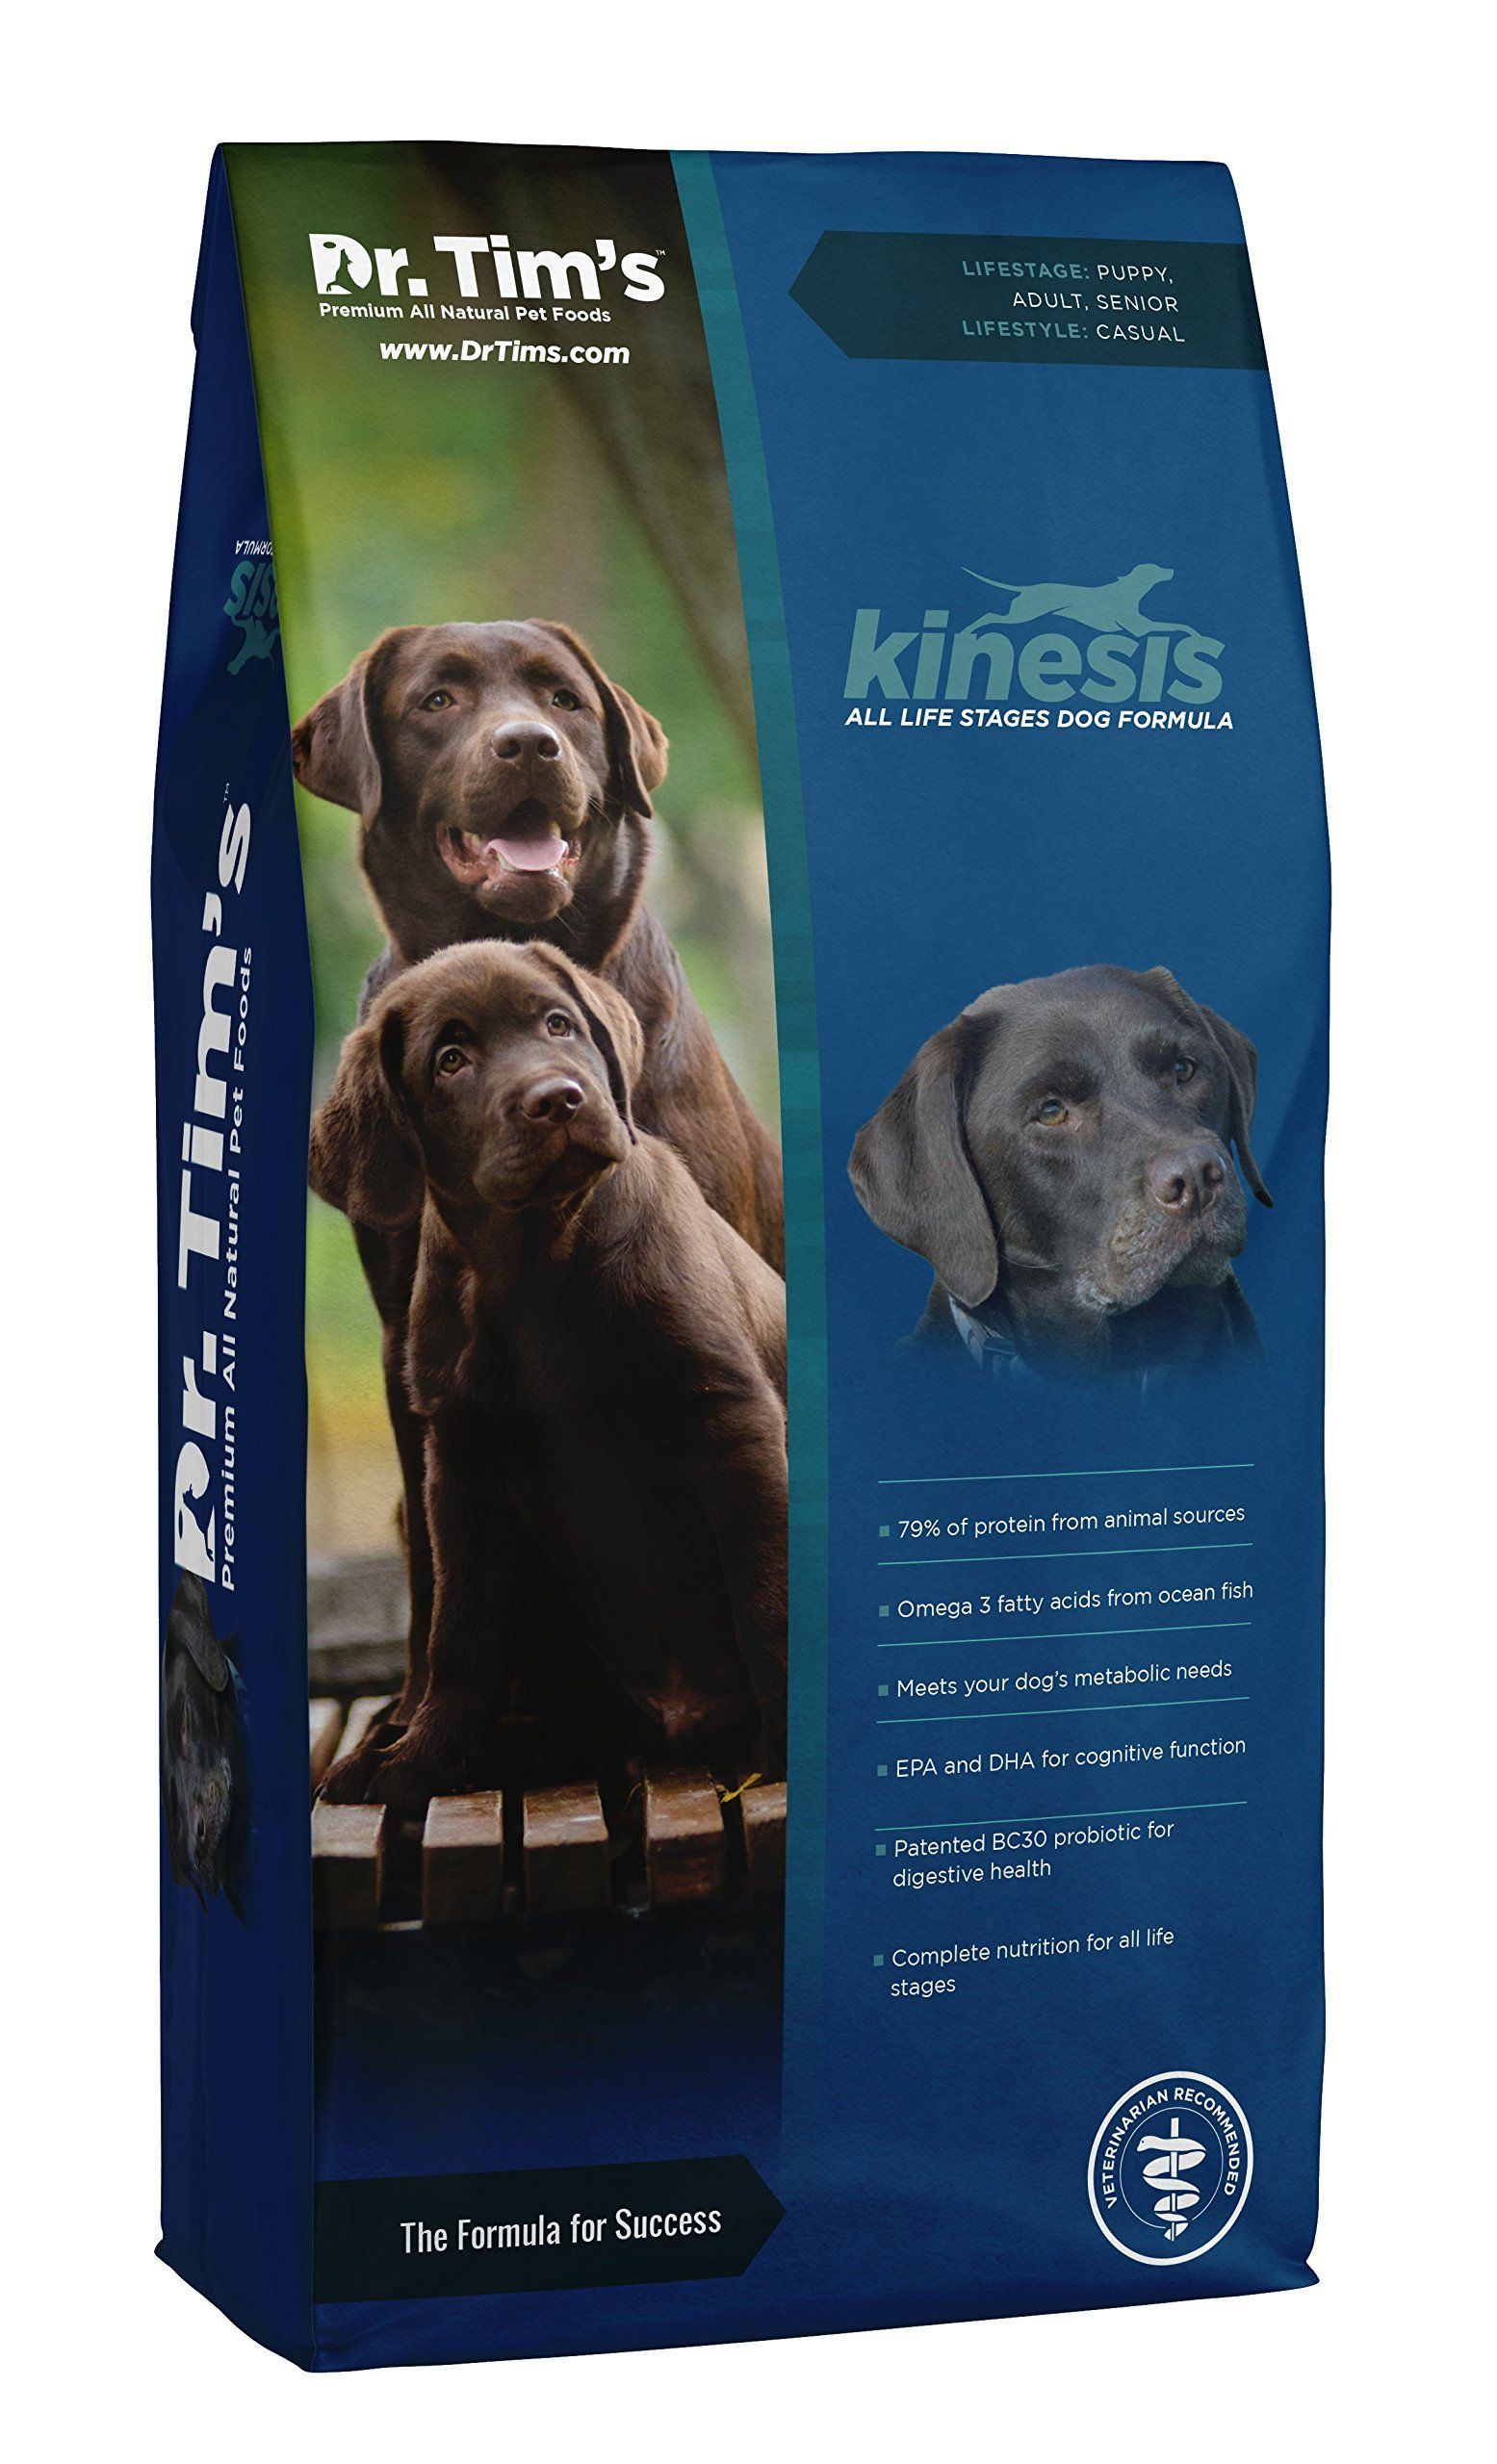 Dr Tims Kinesis All Life Stages Dog Food Formula 40 Lb Bag Be